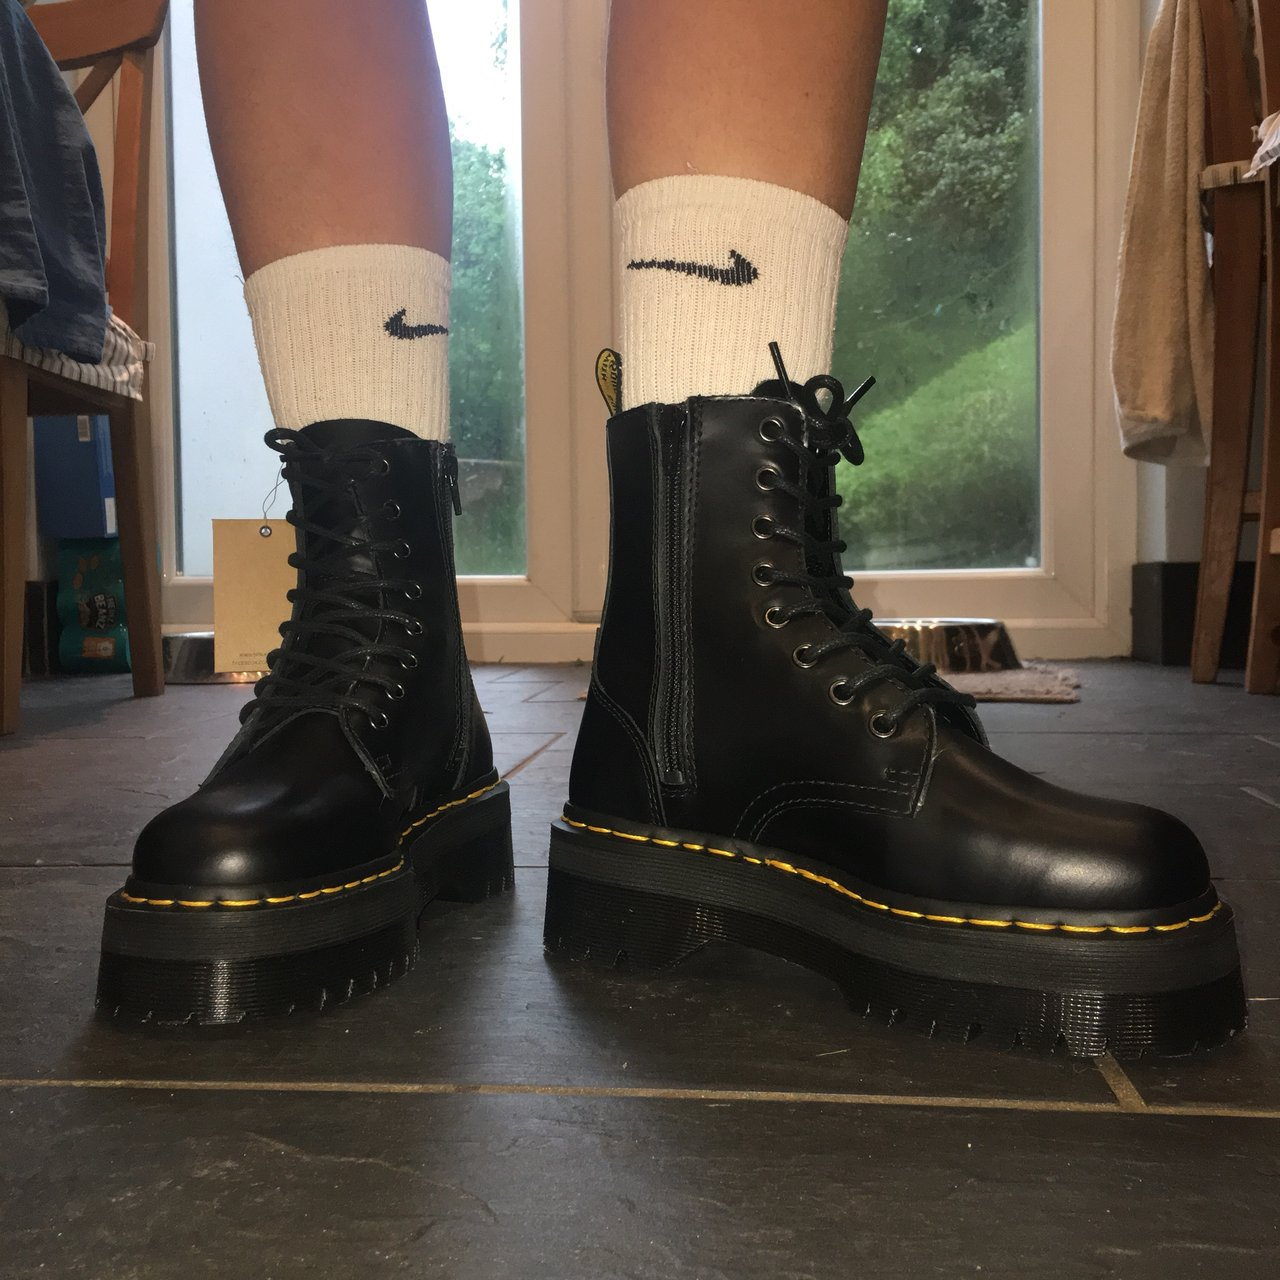 22939ba0e434 BLACK POLISHED SMOOTH JADON 8 EYE BOOTS SIZE 5 Dr. Martens - Depop